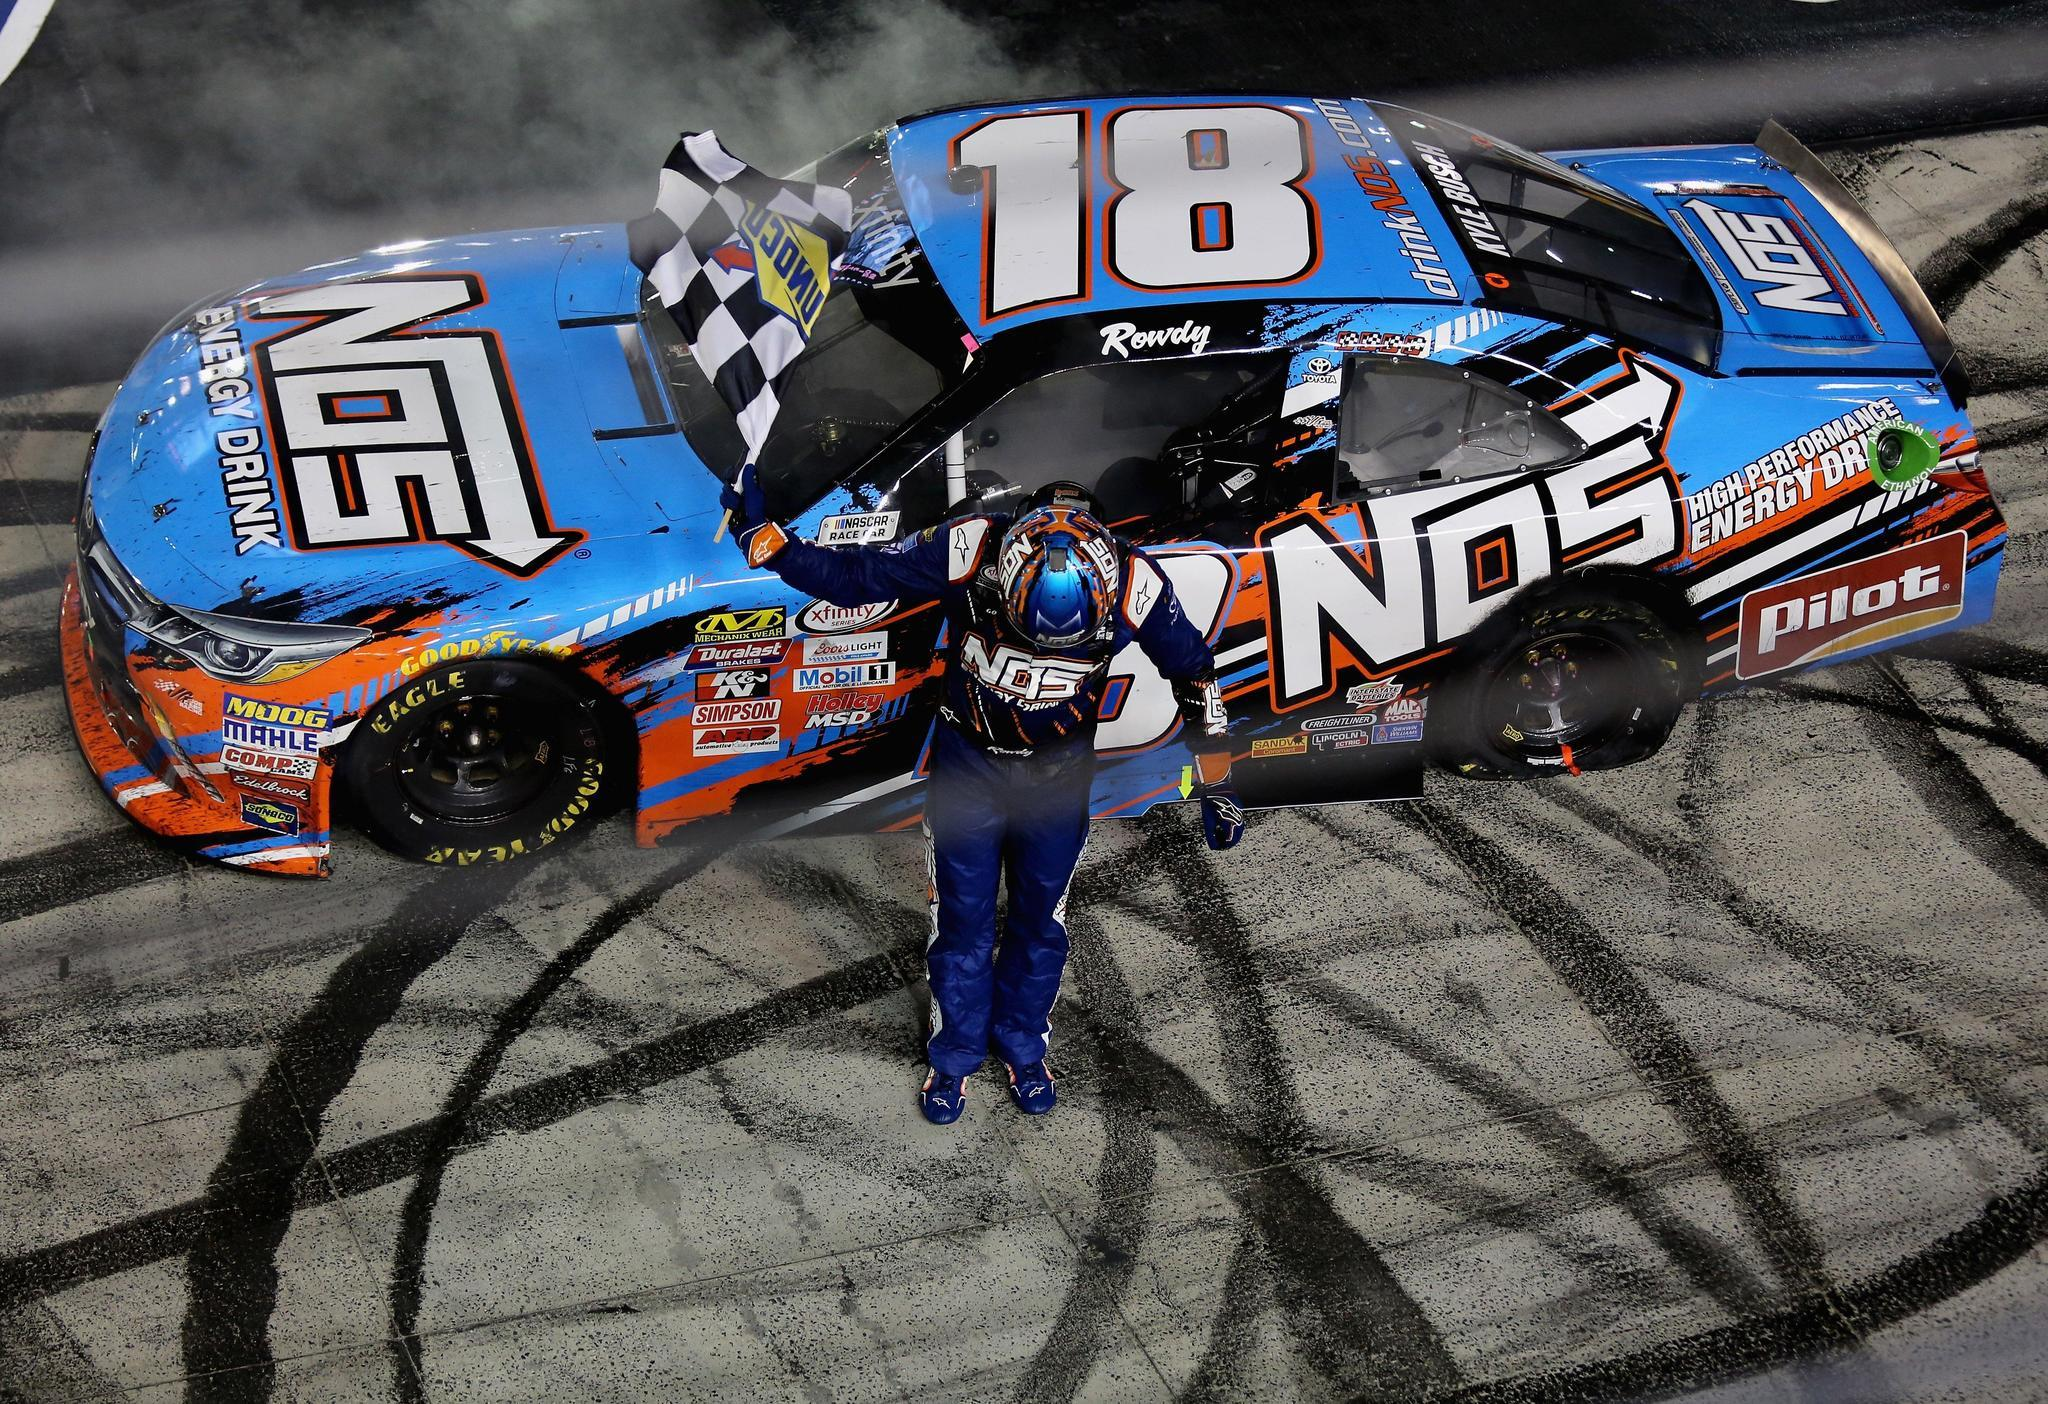 Kyle busch wins at bristol for 19th time in nascar the morning call - Pictures of kyle busch s car ...